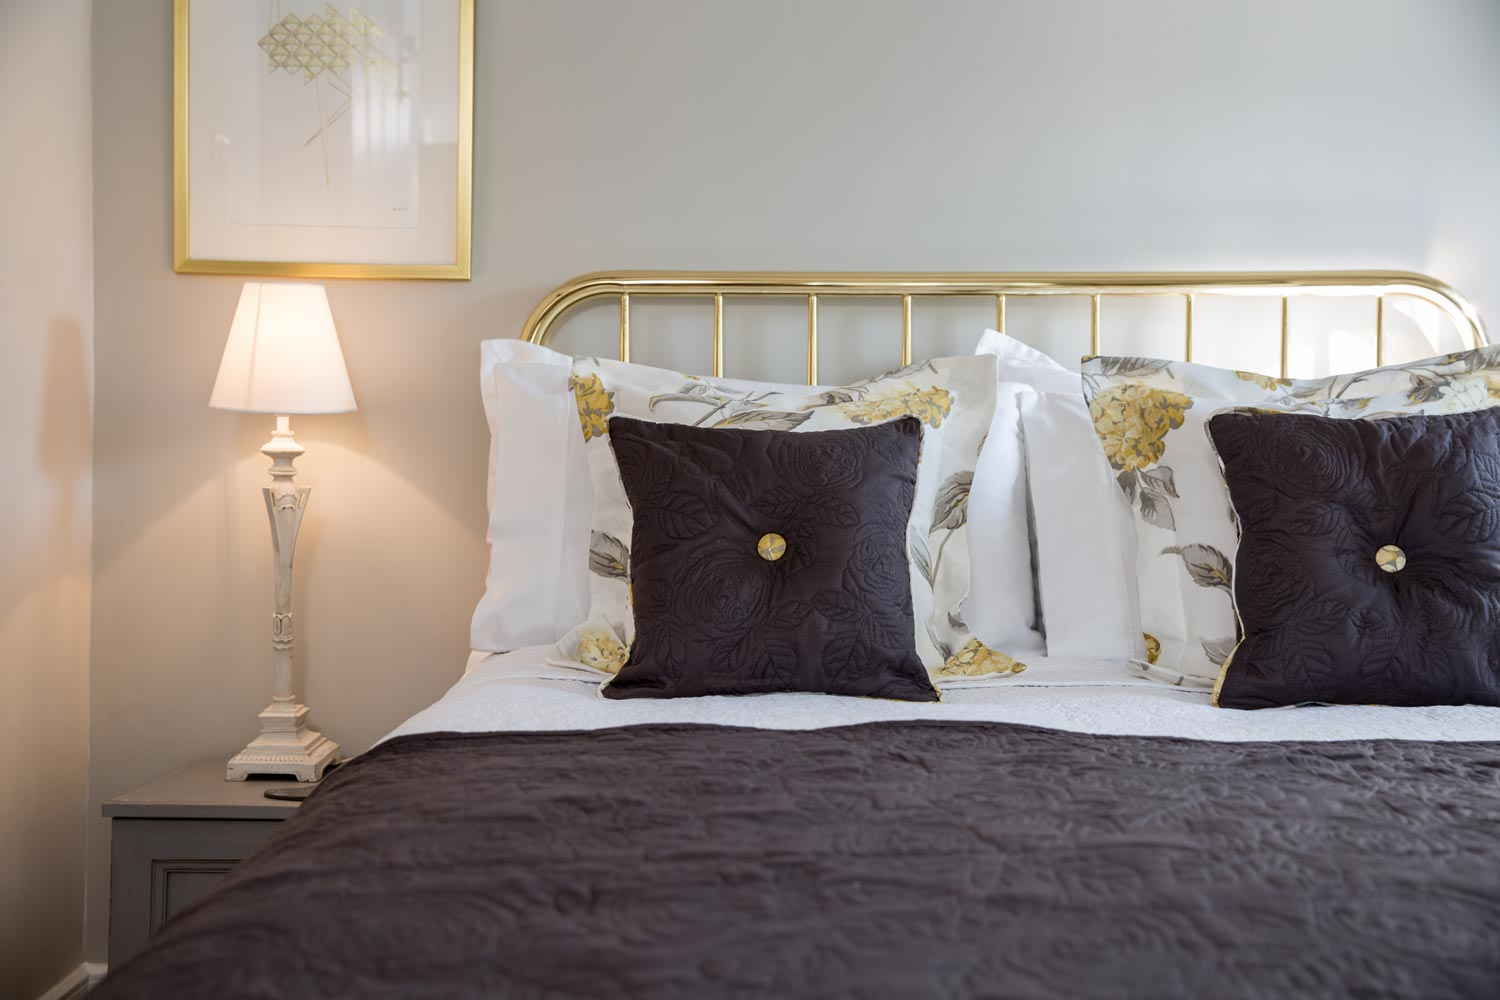 Quality furnishings and linens